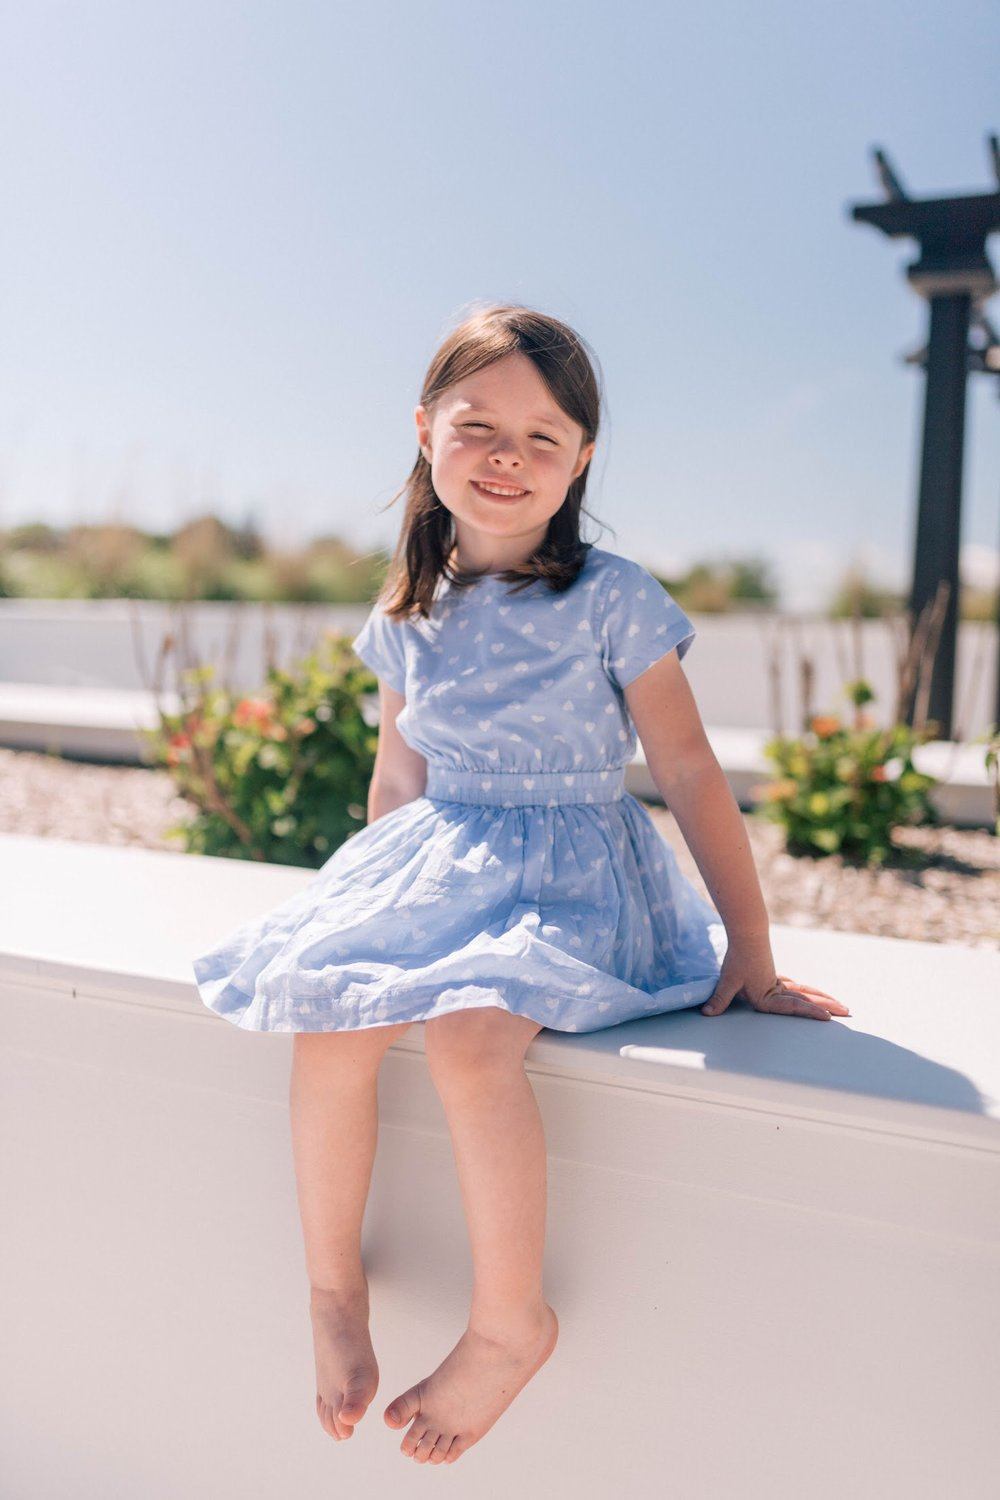 7a442c600802 How cute is my niece?? I love shopping for little girls clothing.  Everything is so adorable. If I had a little girl her style would  definitely have some ...